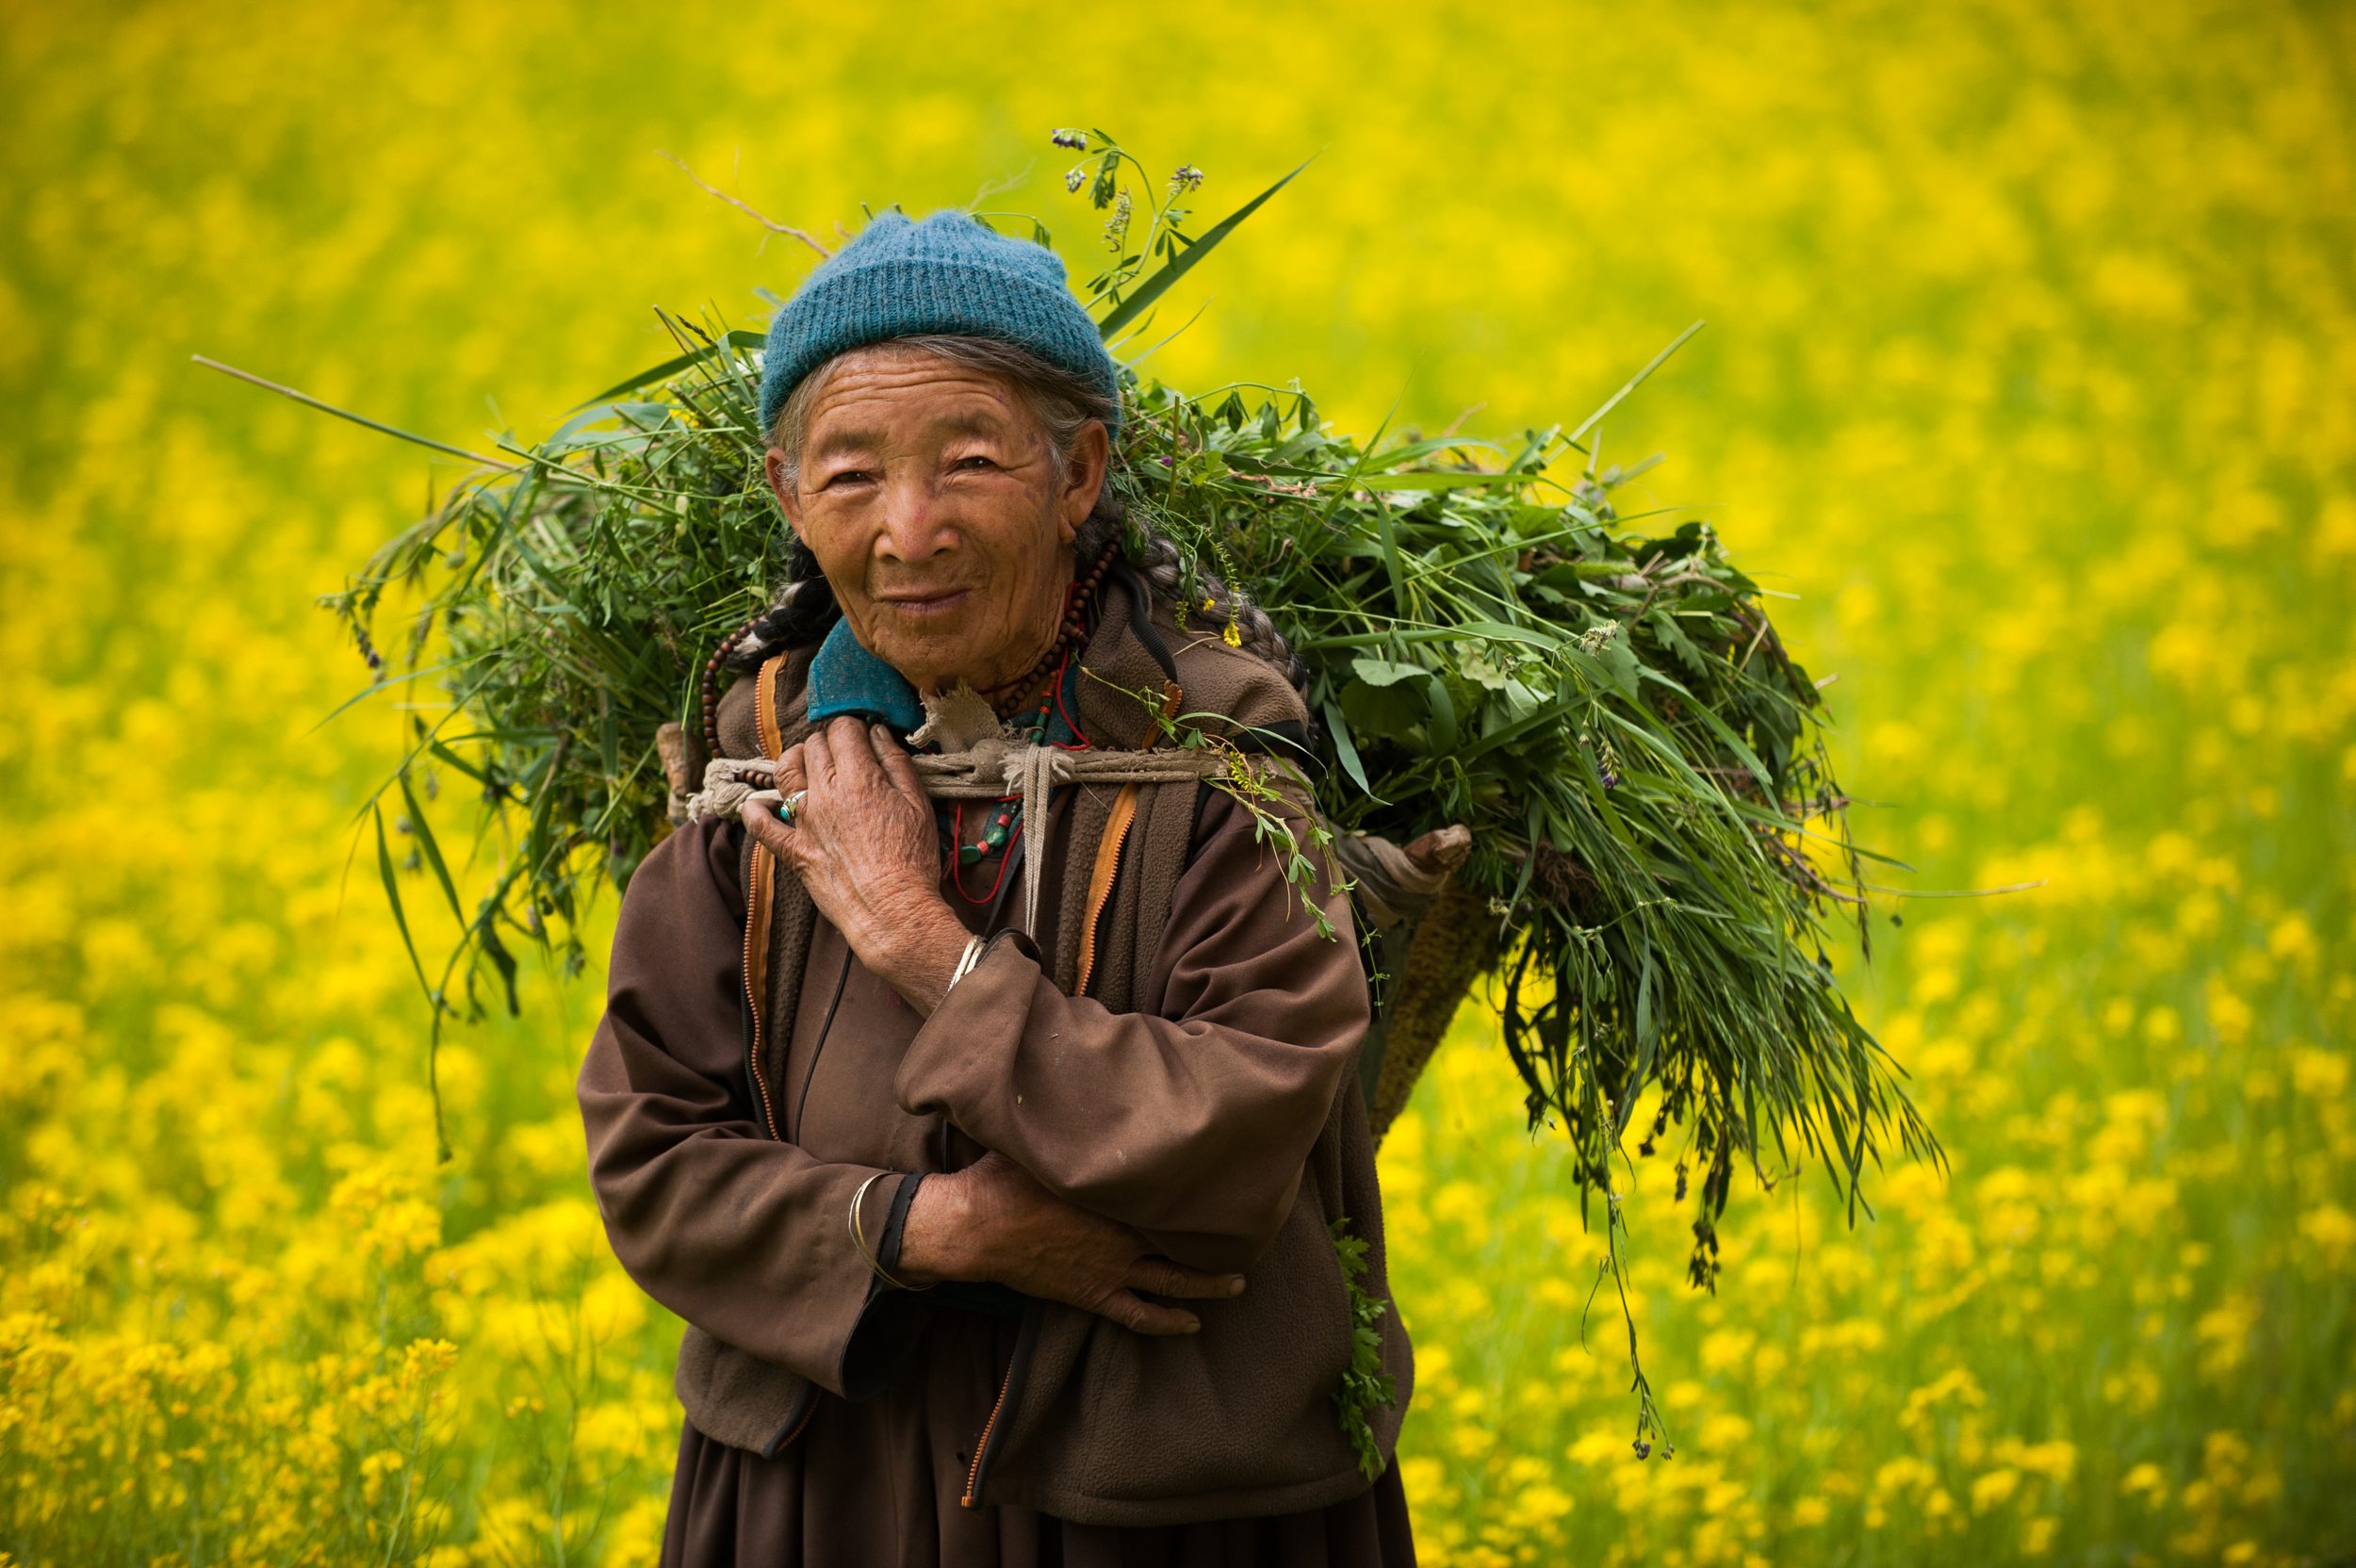 India - Ladakh   An old Ladakhi woman in a vibrant yellow mustard oil field carries fodder to feed to animals